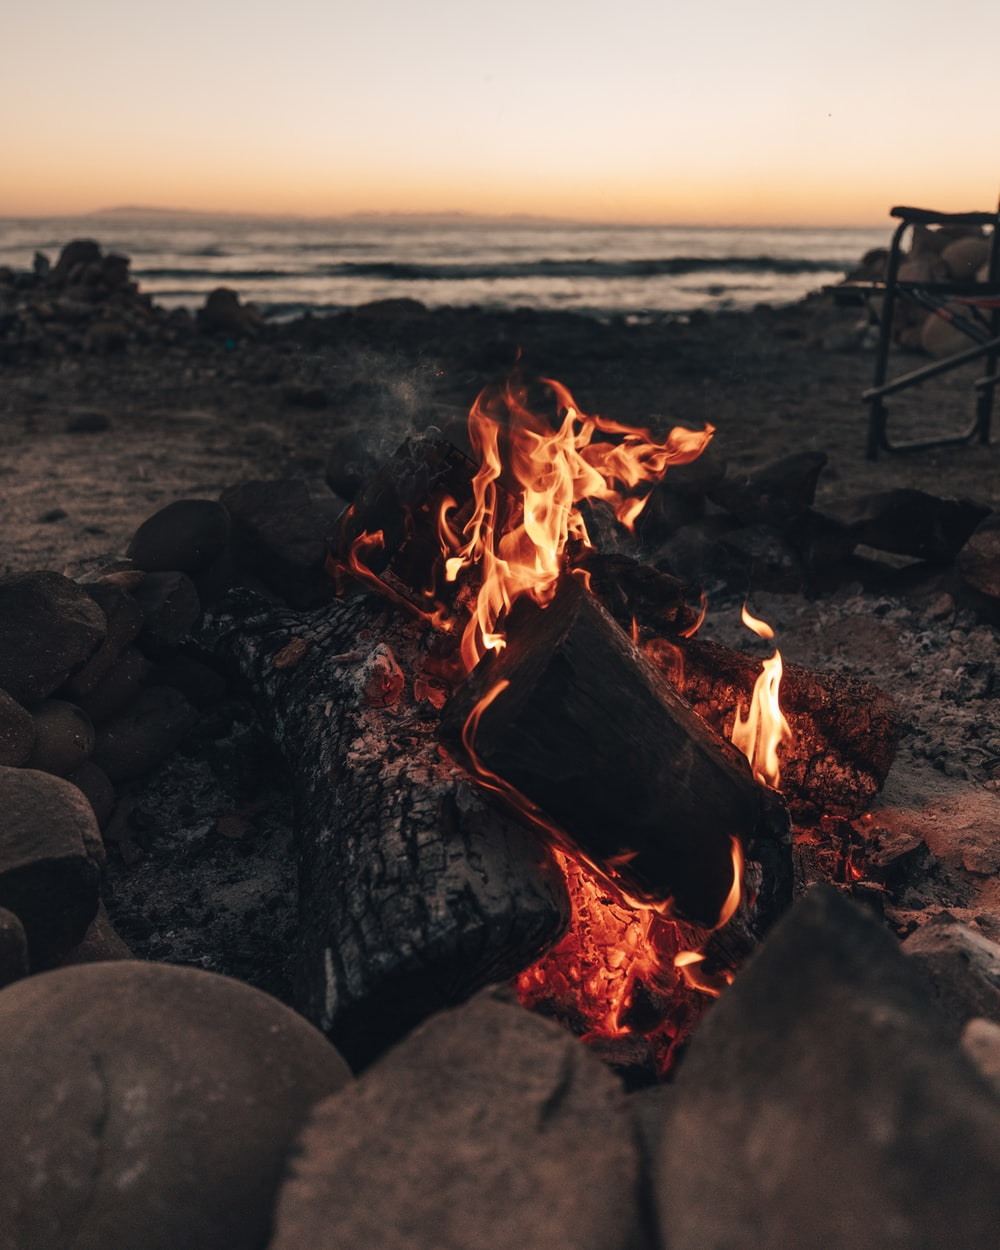 burning wood on the beach during sunset